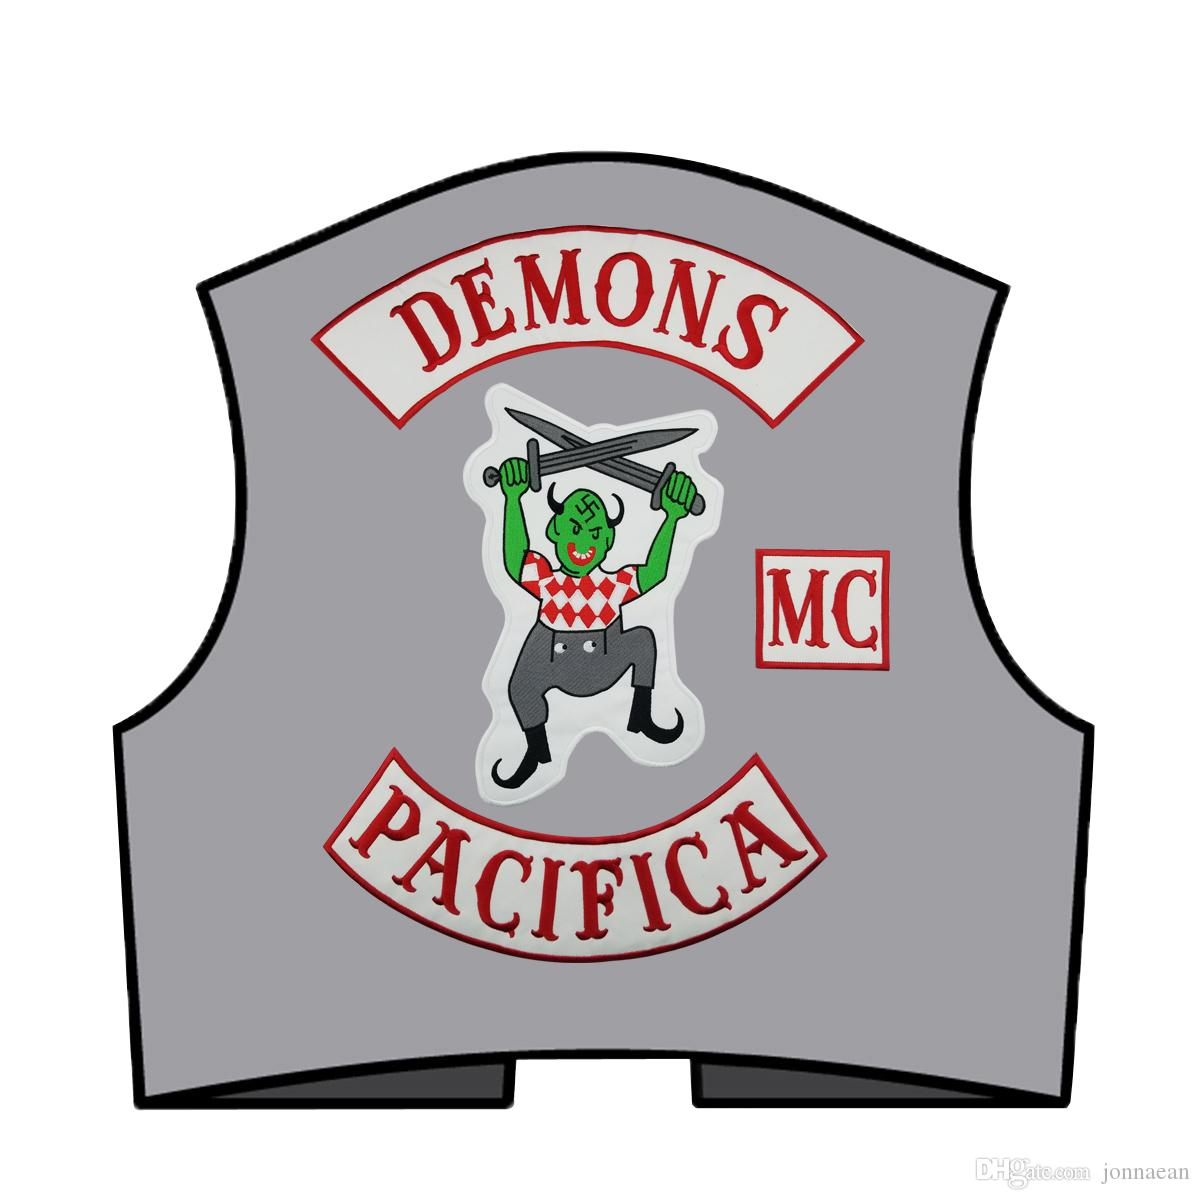 NEW ARRIVAL COOLEST DEMONS PACIFICA LARGE BACK EMBROIDERY PATCH MOTORCYCLE CLUB VEST OUTLAW BIKER MC COLORS PATCH